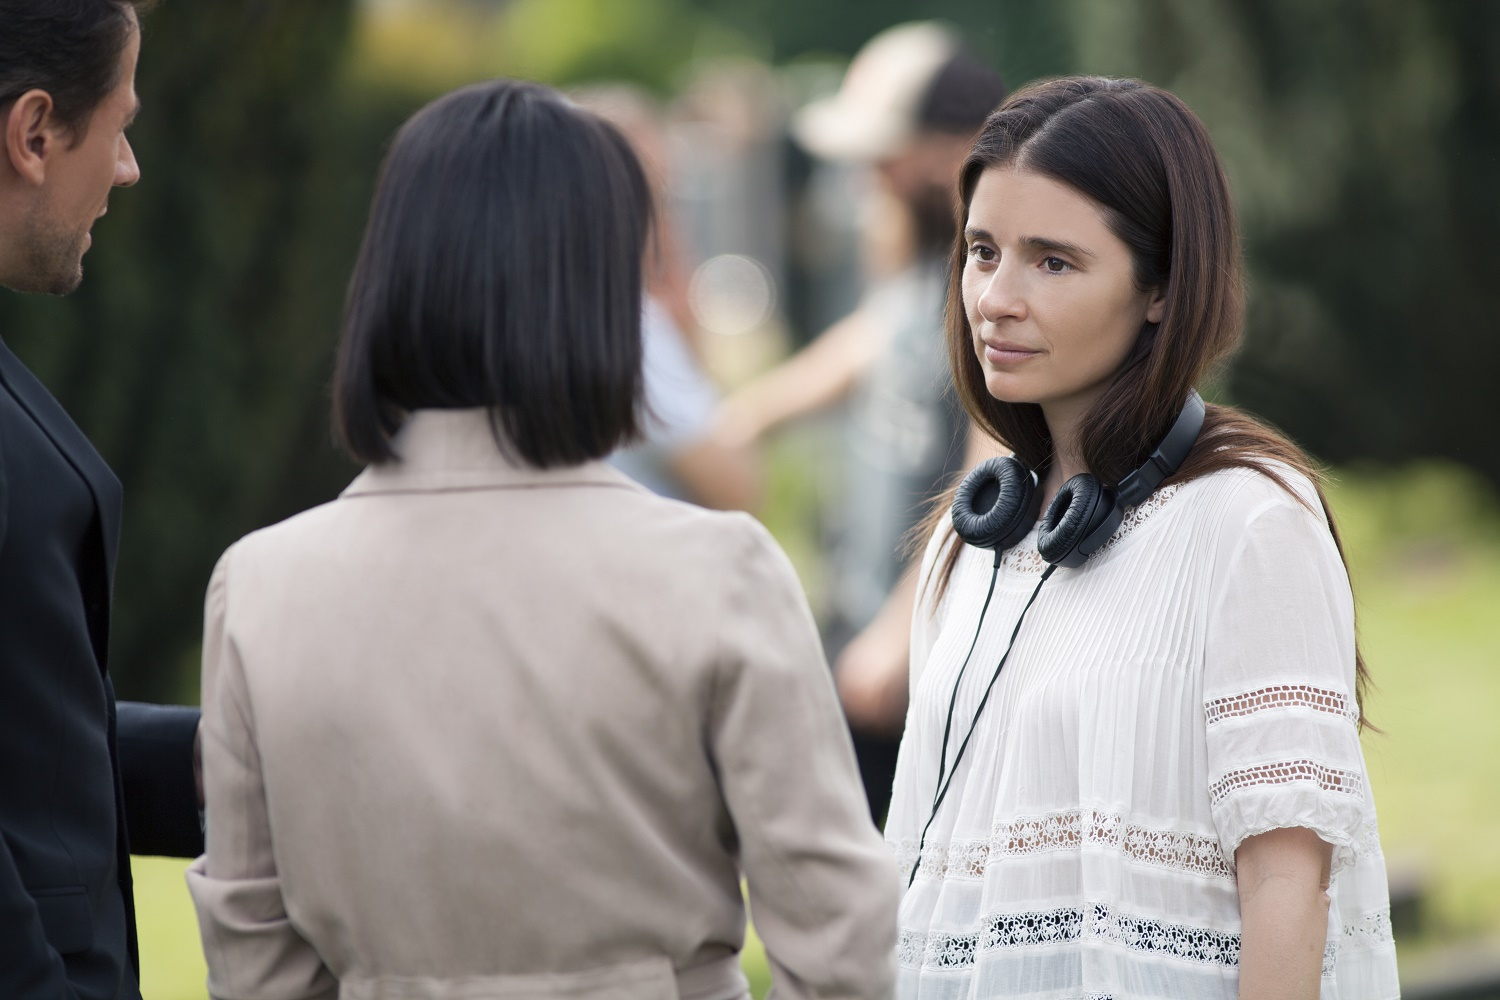 Shiri Appleby, Unreal, interview by Pamela Price